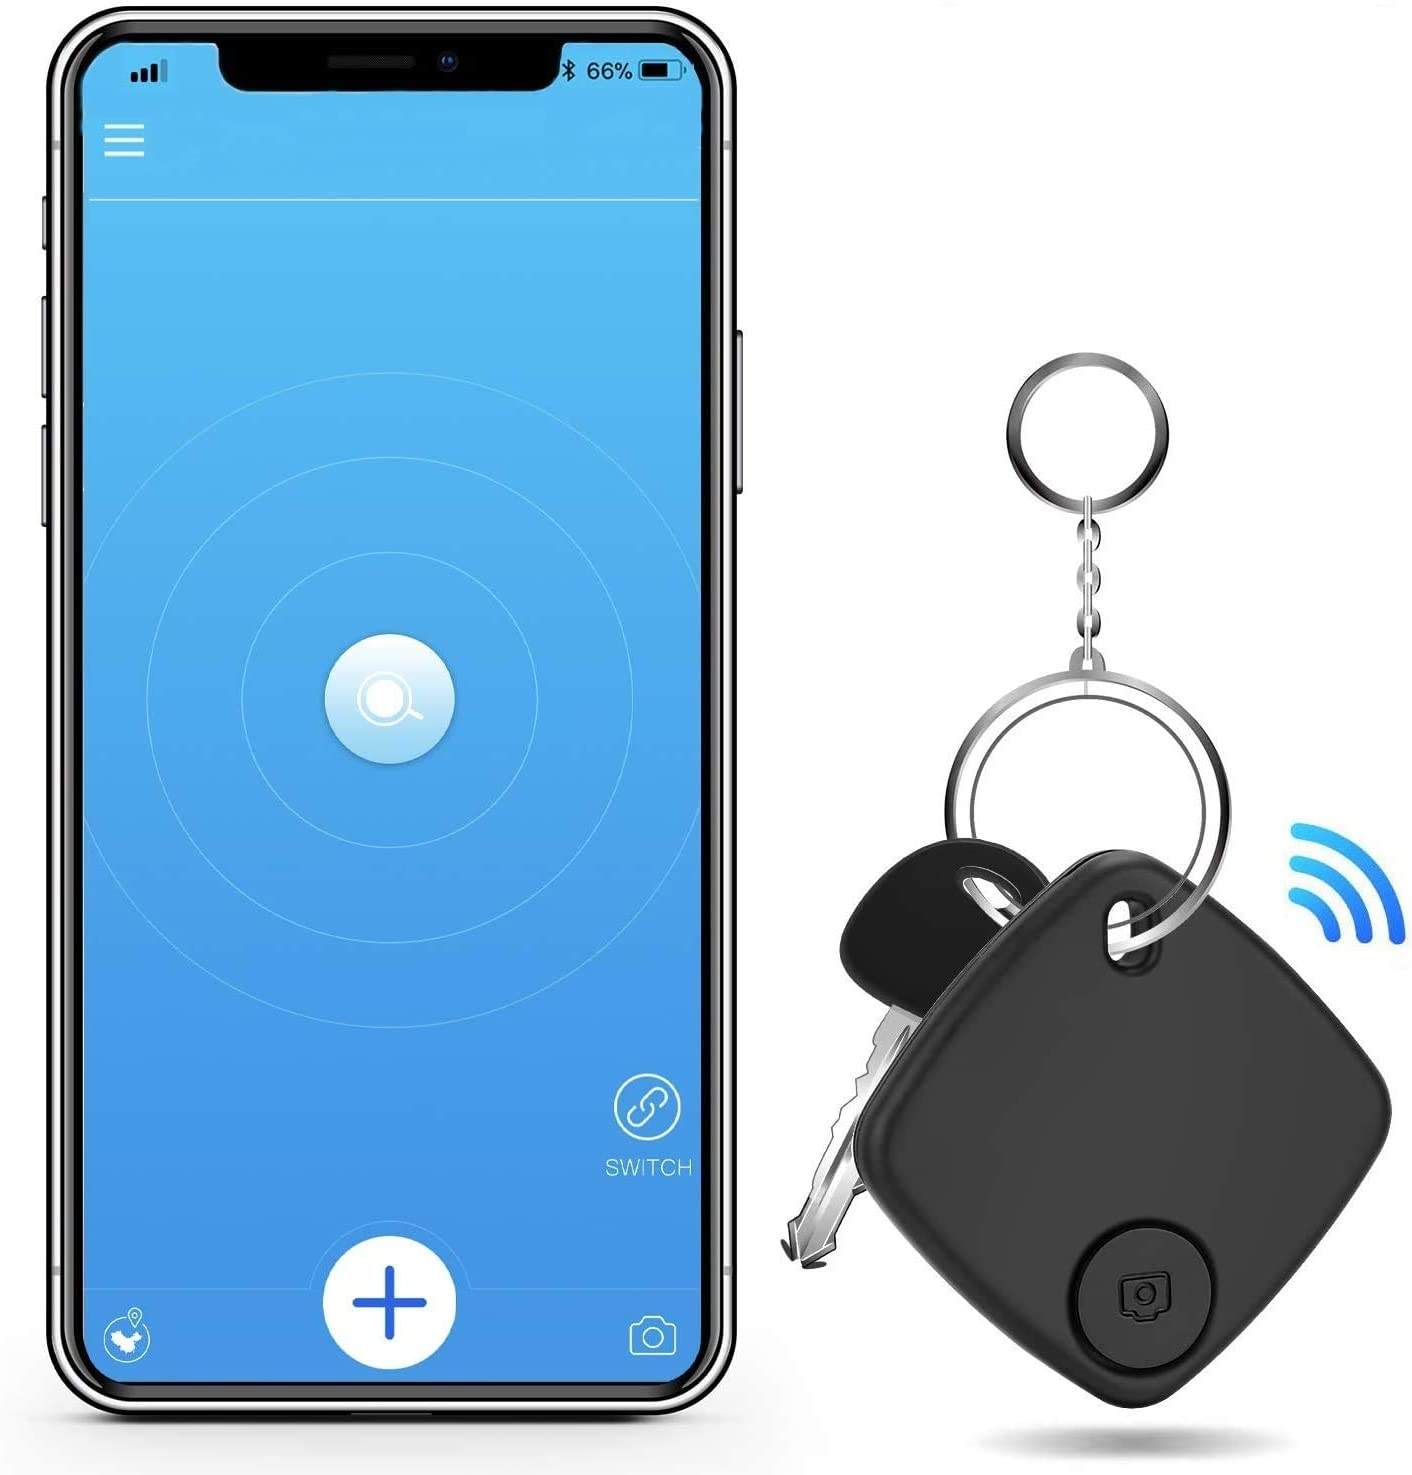 Anti-Lost Bluetooth Item Finder Wallet Tracker Key Finder Smart Tracker Device with App for Phones Keychain Purse Luggage Bag Key Finder Locator